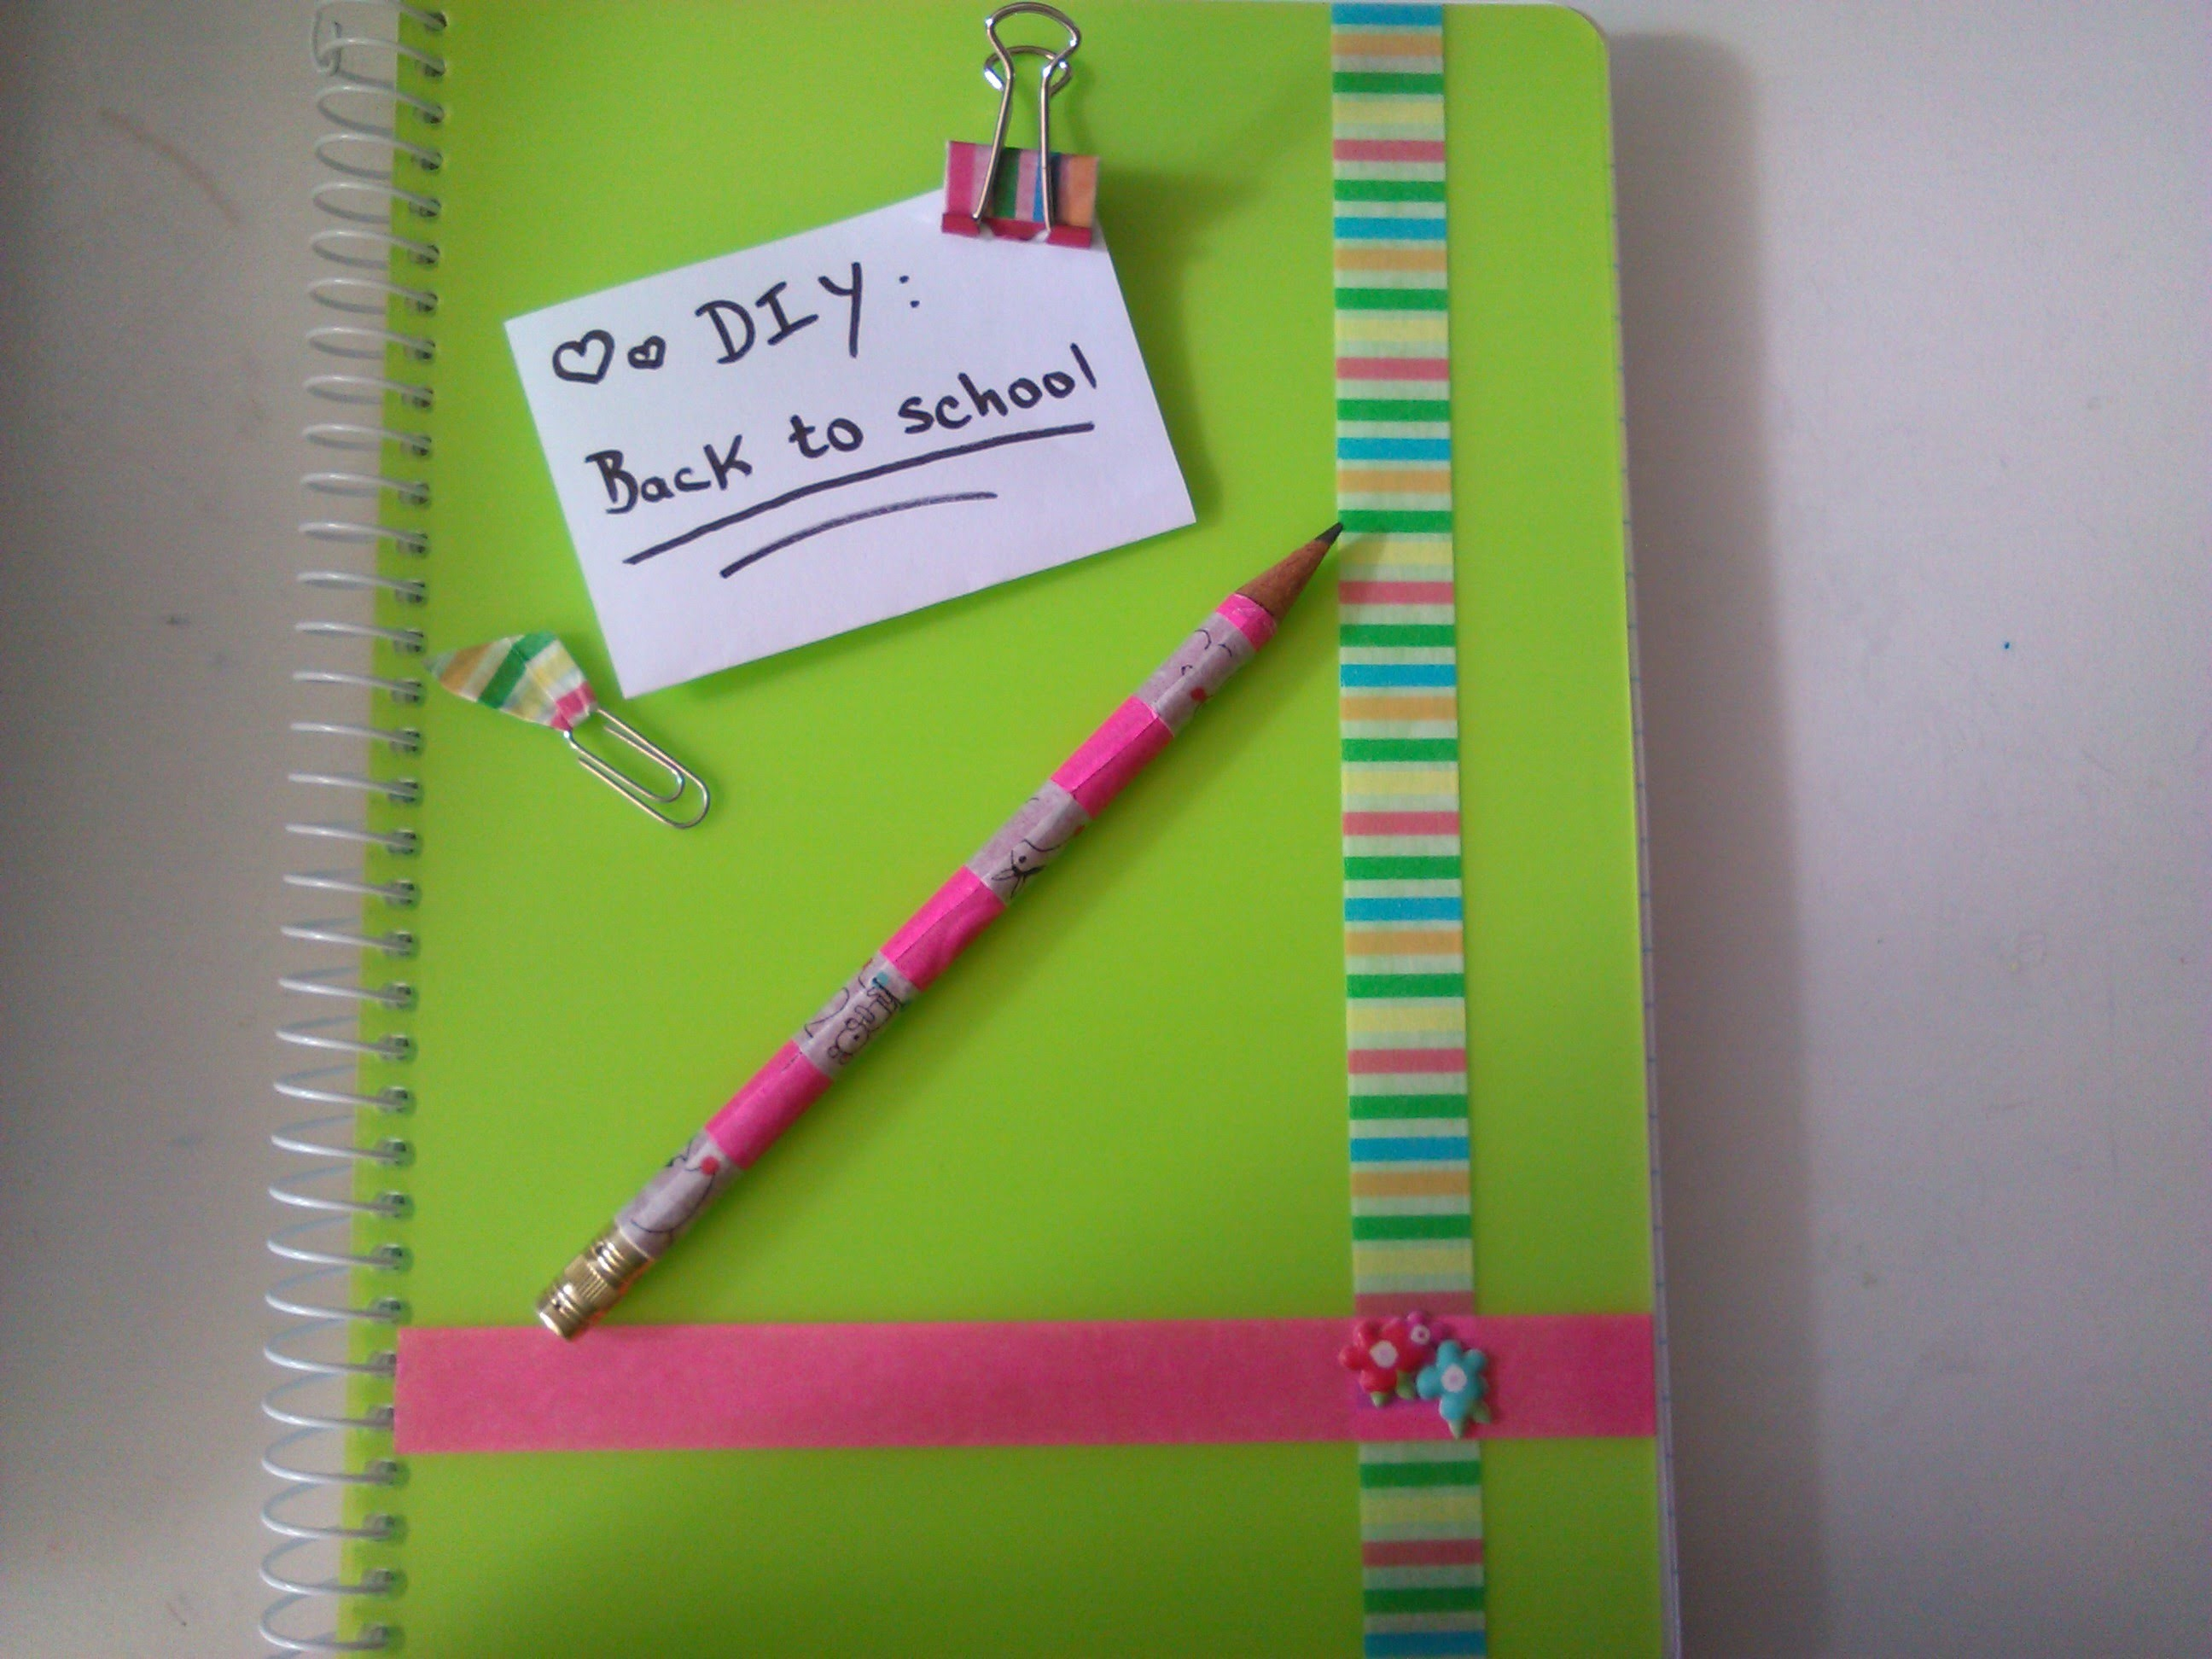 DIY -Back to school: Washi tape ideas